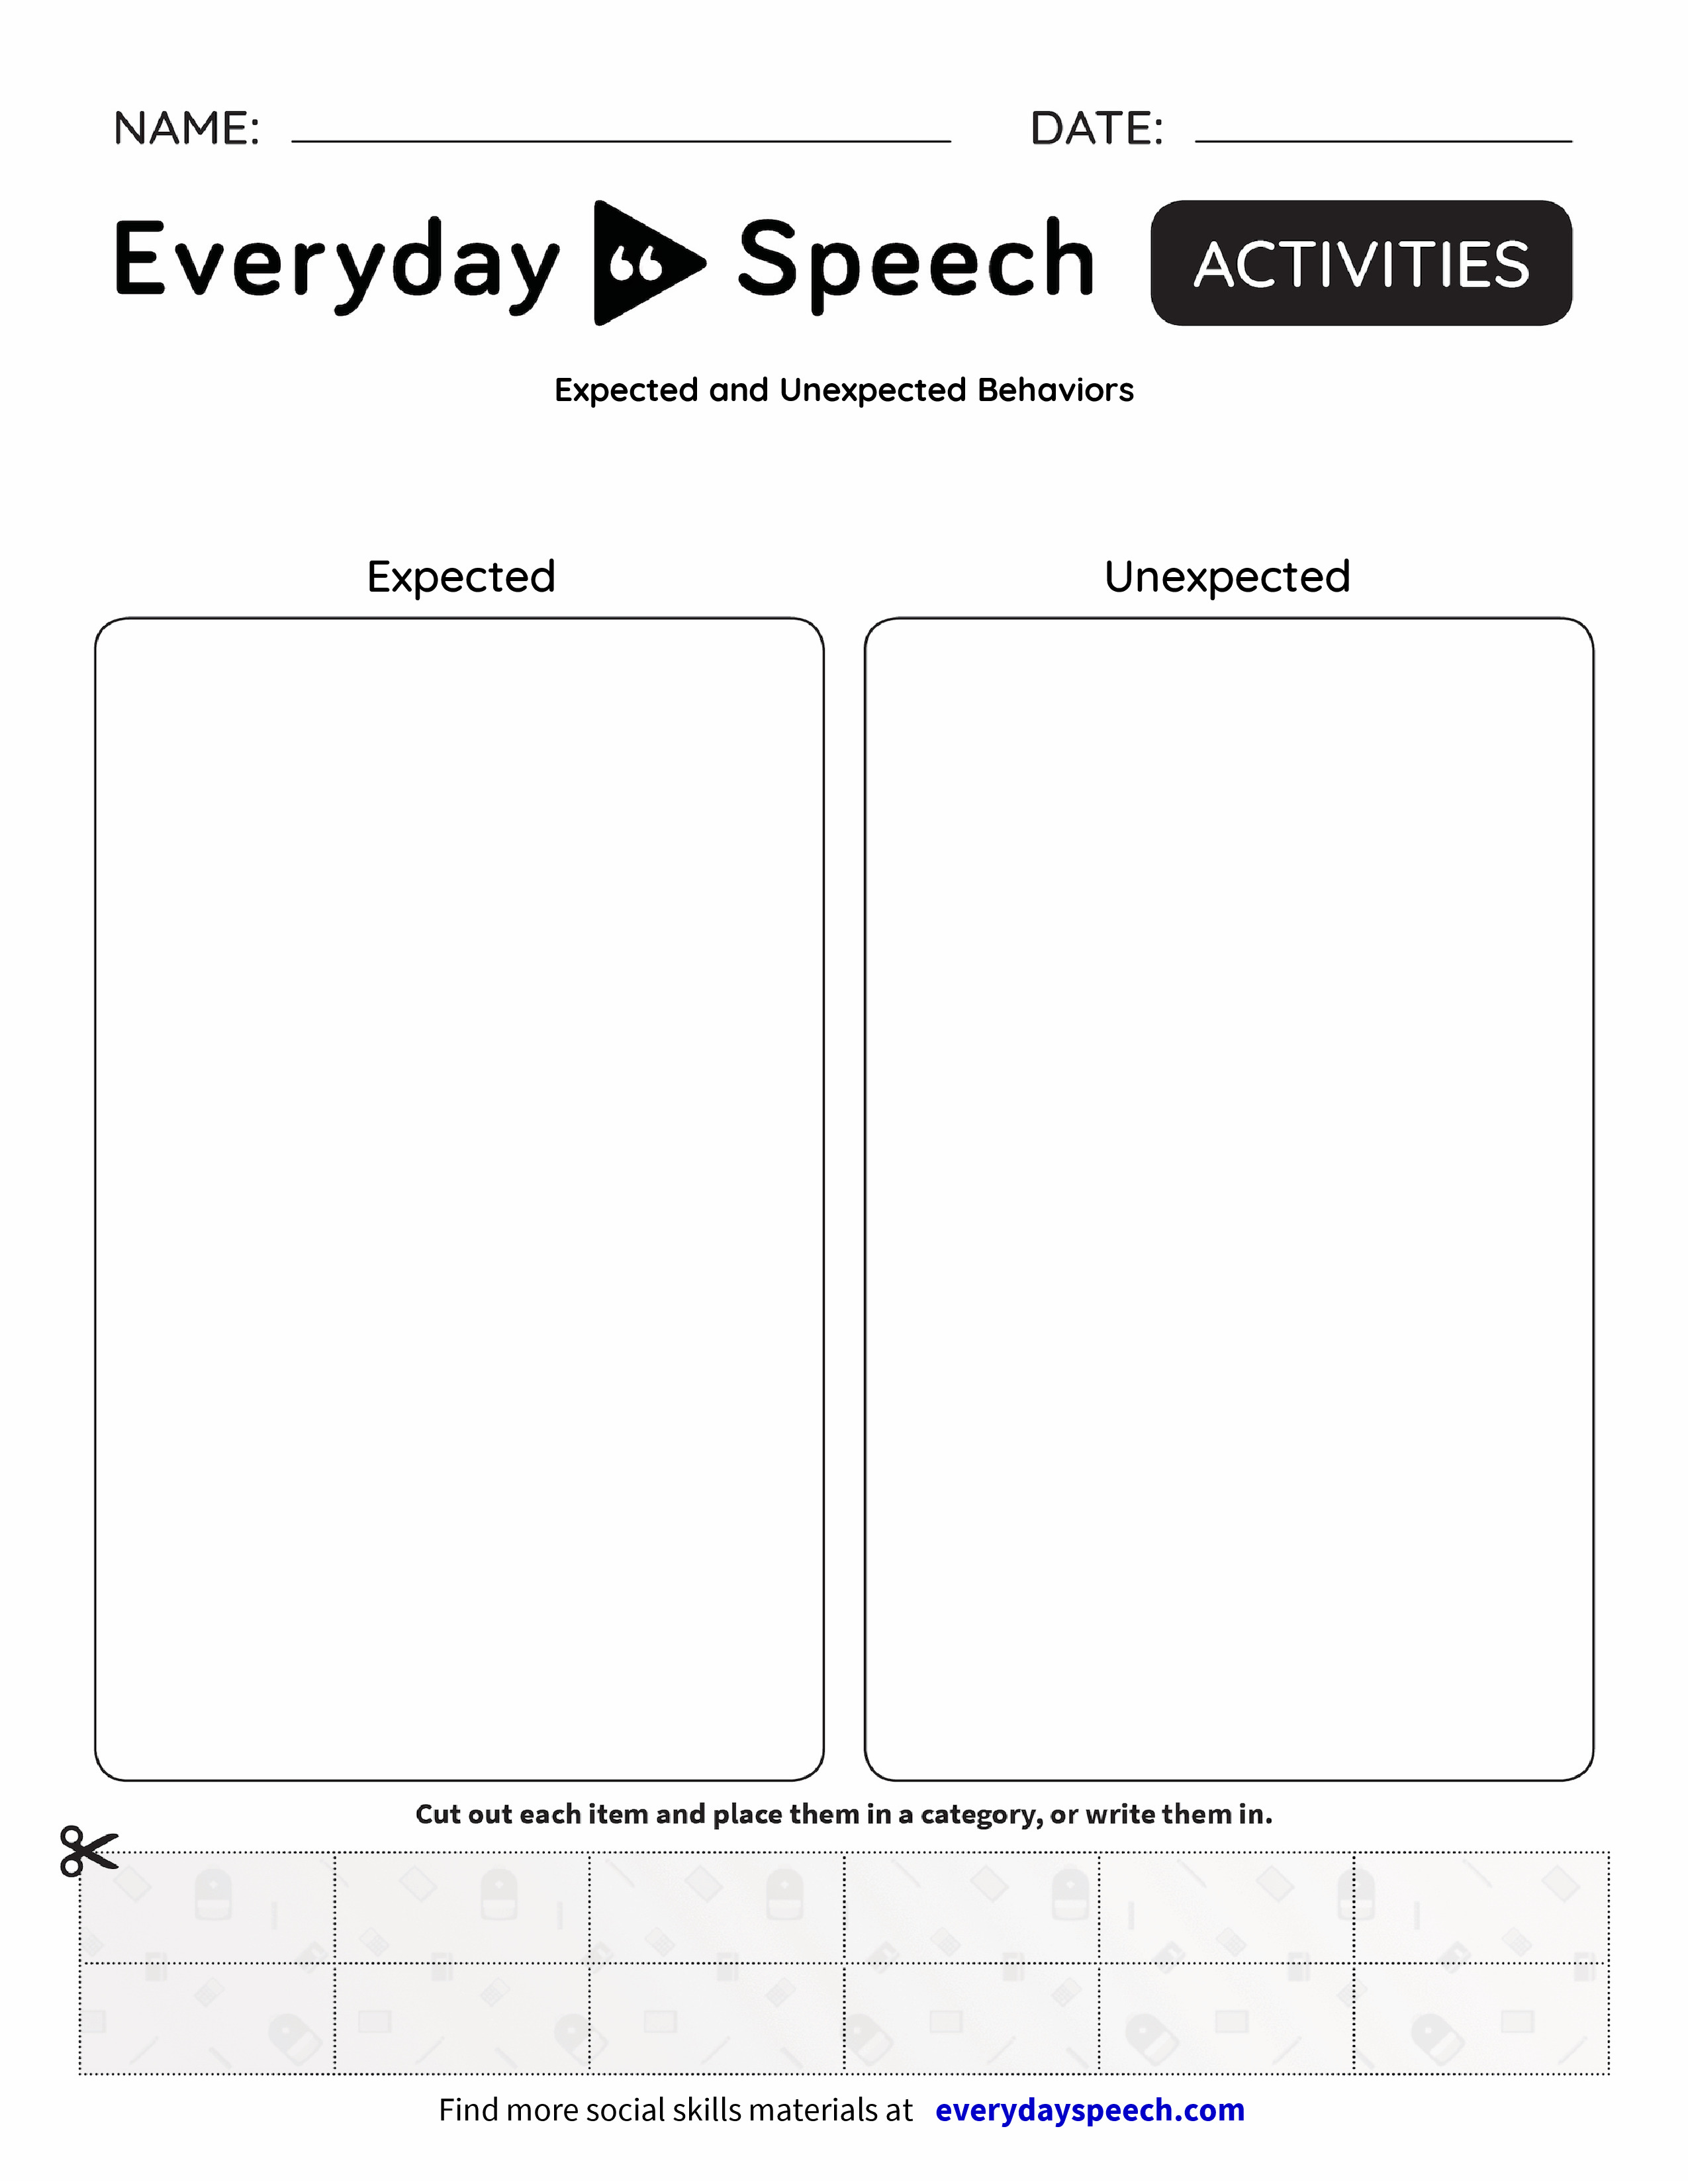 worksheet Expected And Unexpected Behaviors Worksheet expected and unexpected behaviors everyday speech preview preview